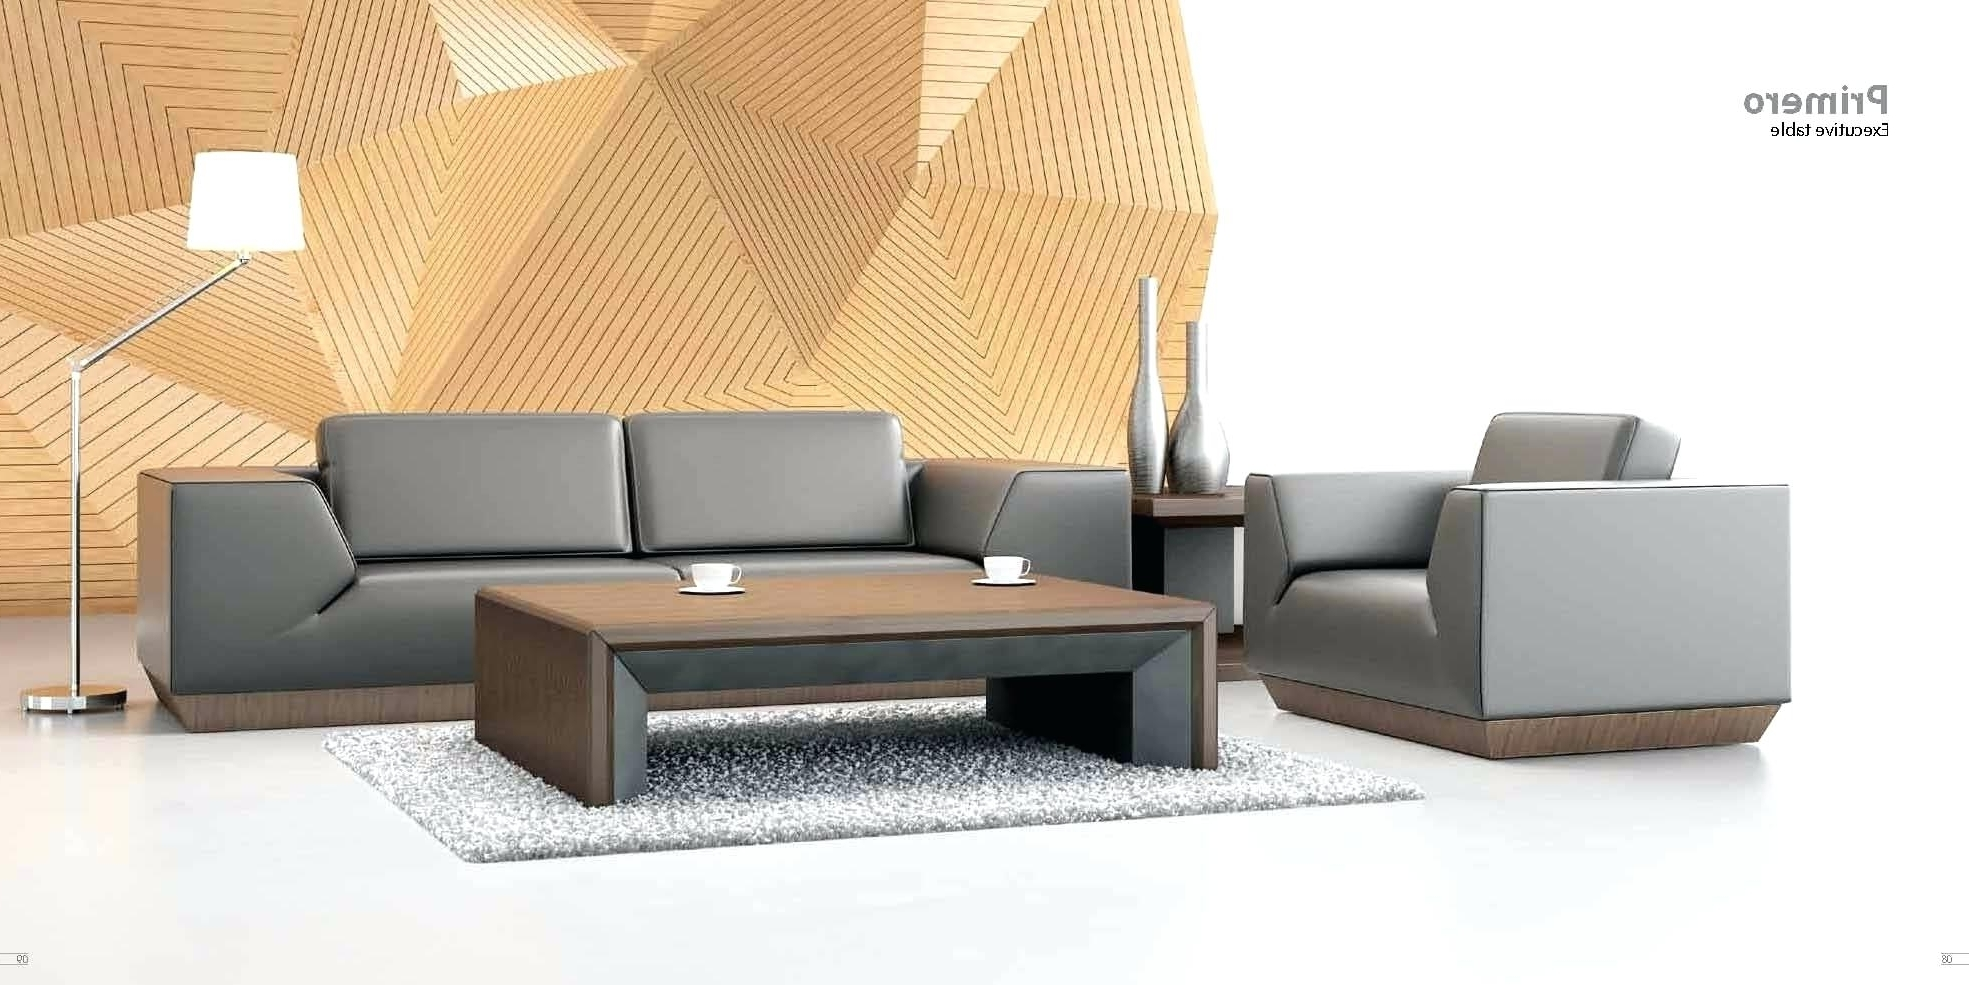 Newest Elegant Sofas And Chairs Inside Chairs : Elegant Sofas And Chairs Full Size Of Sofa King Armchair (View 16 of 20)